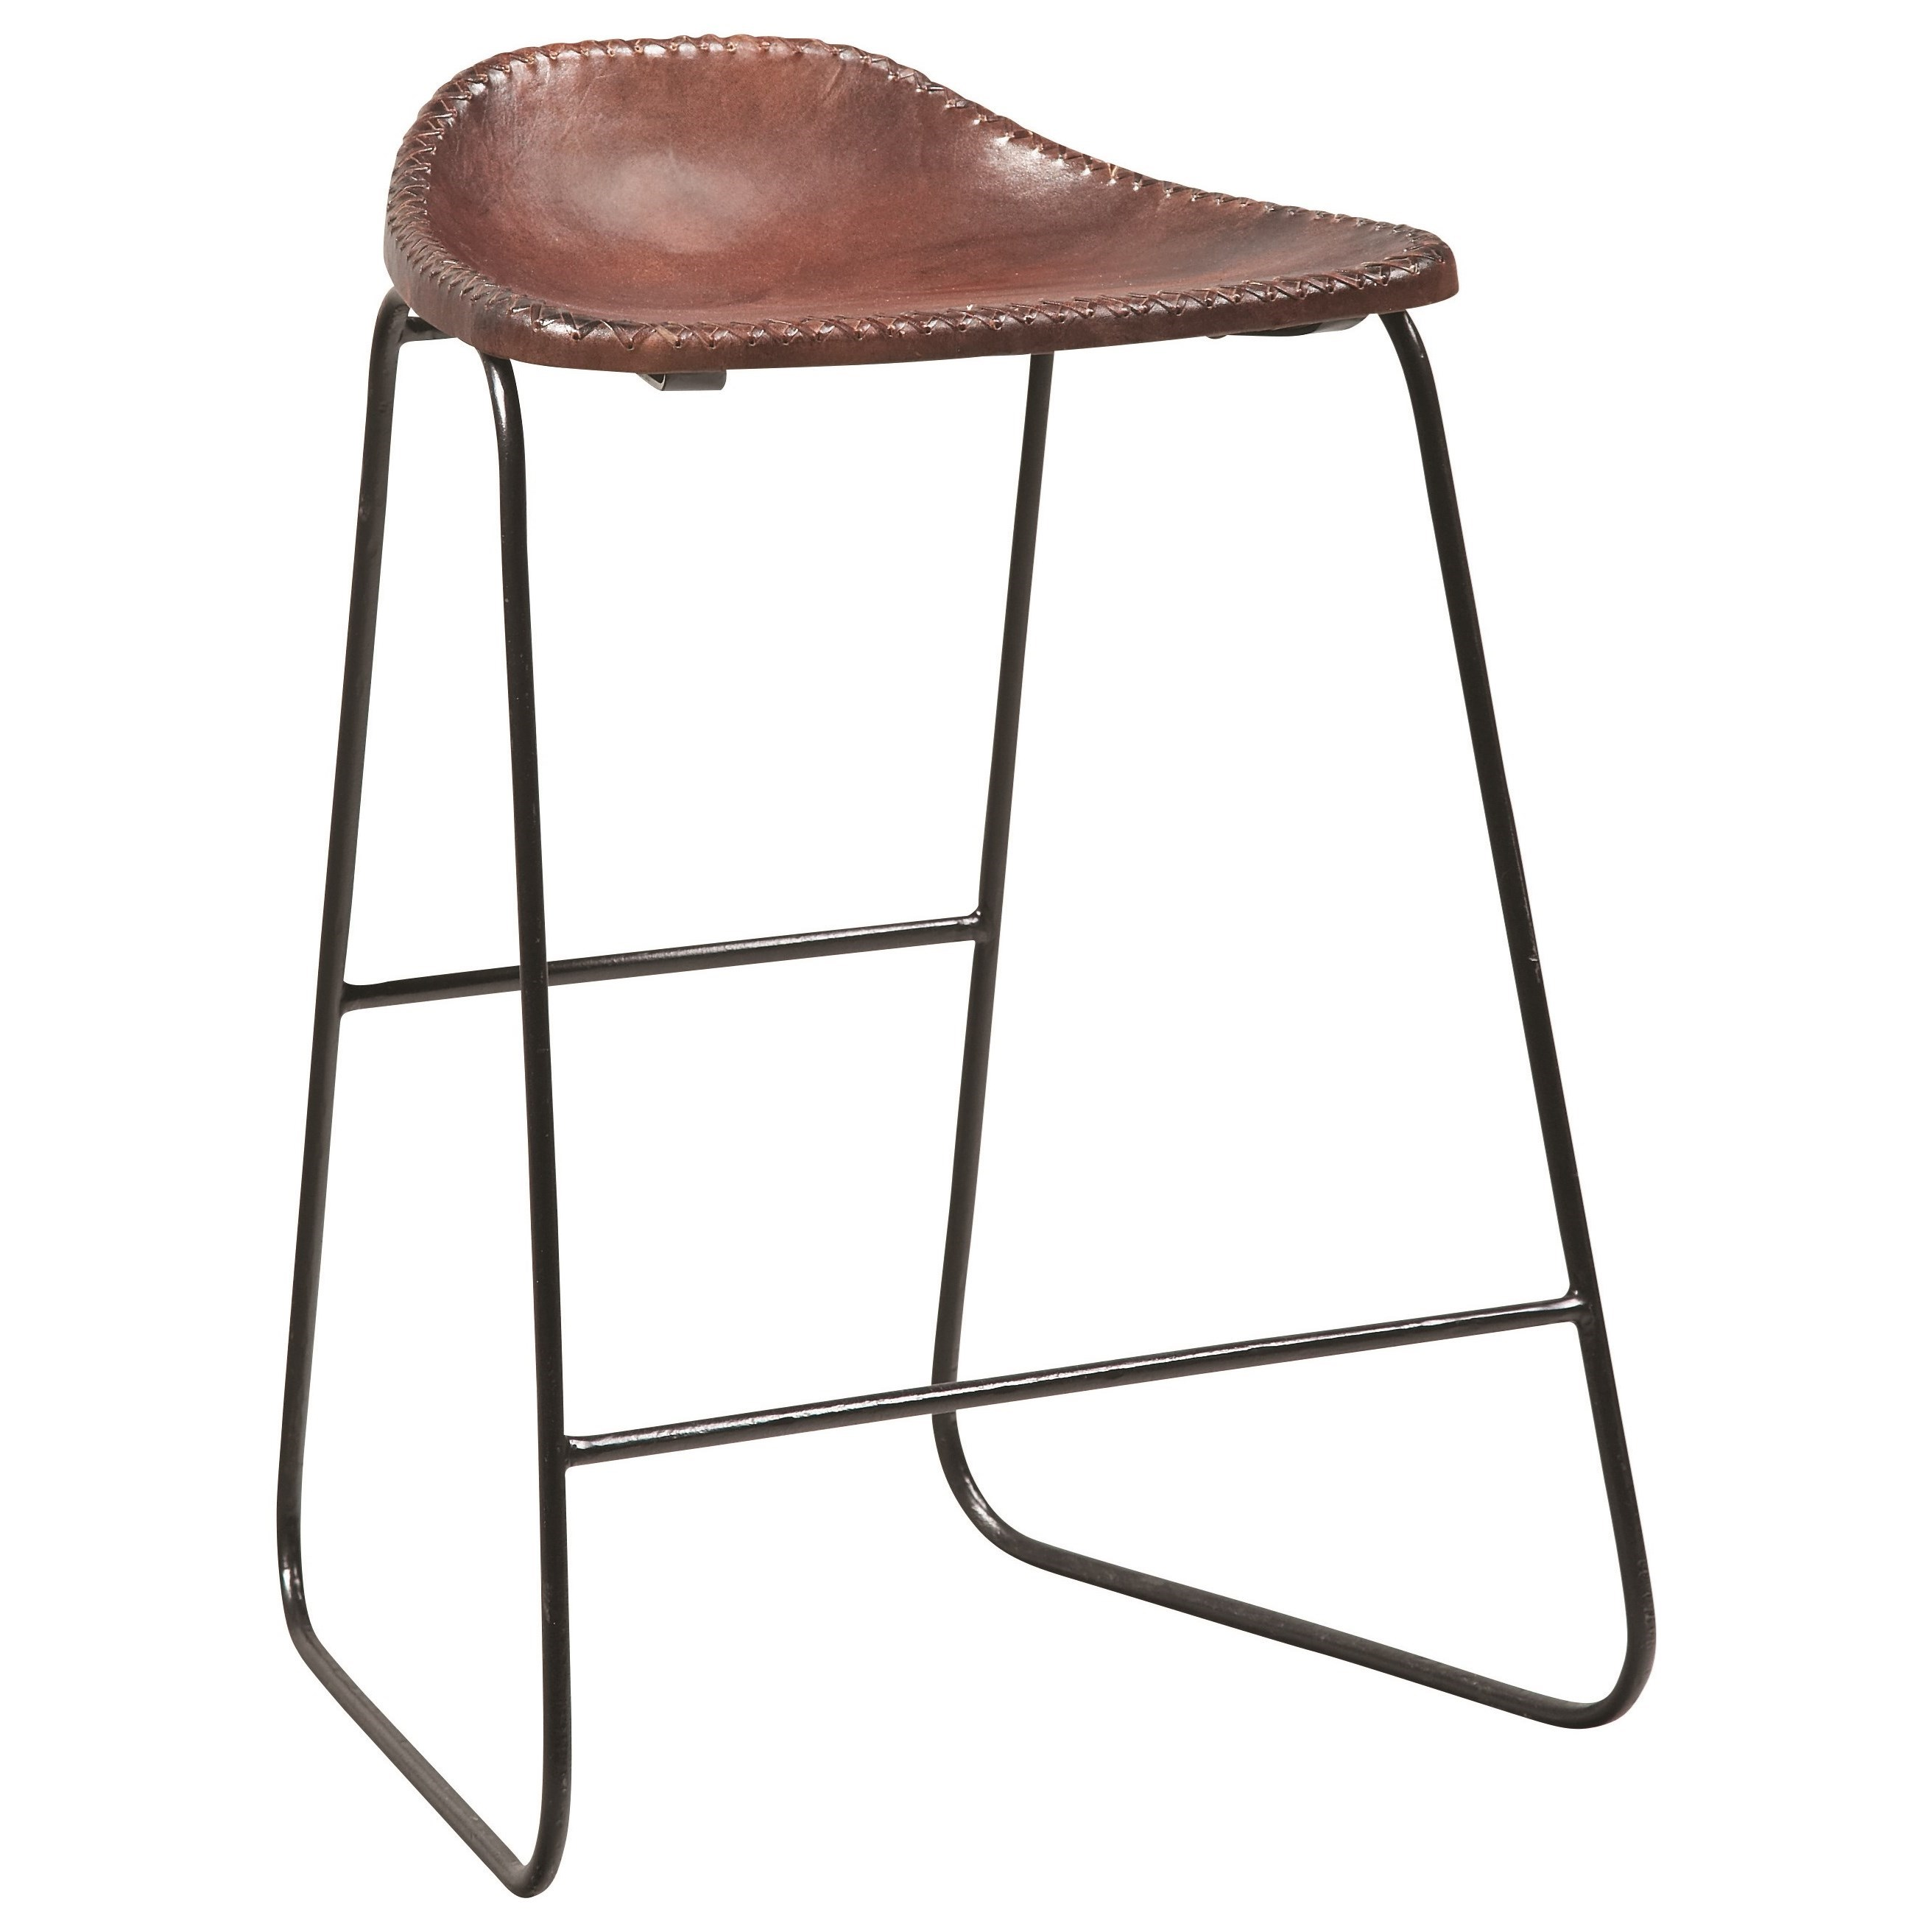 Coaster Dining Chairs and Bar Stools Counter Height Stool - Item Number: 180212